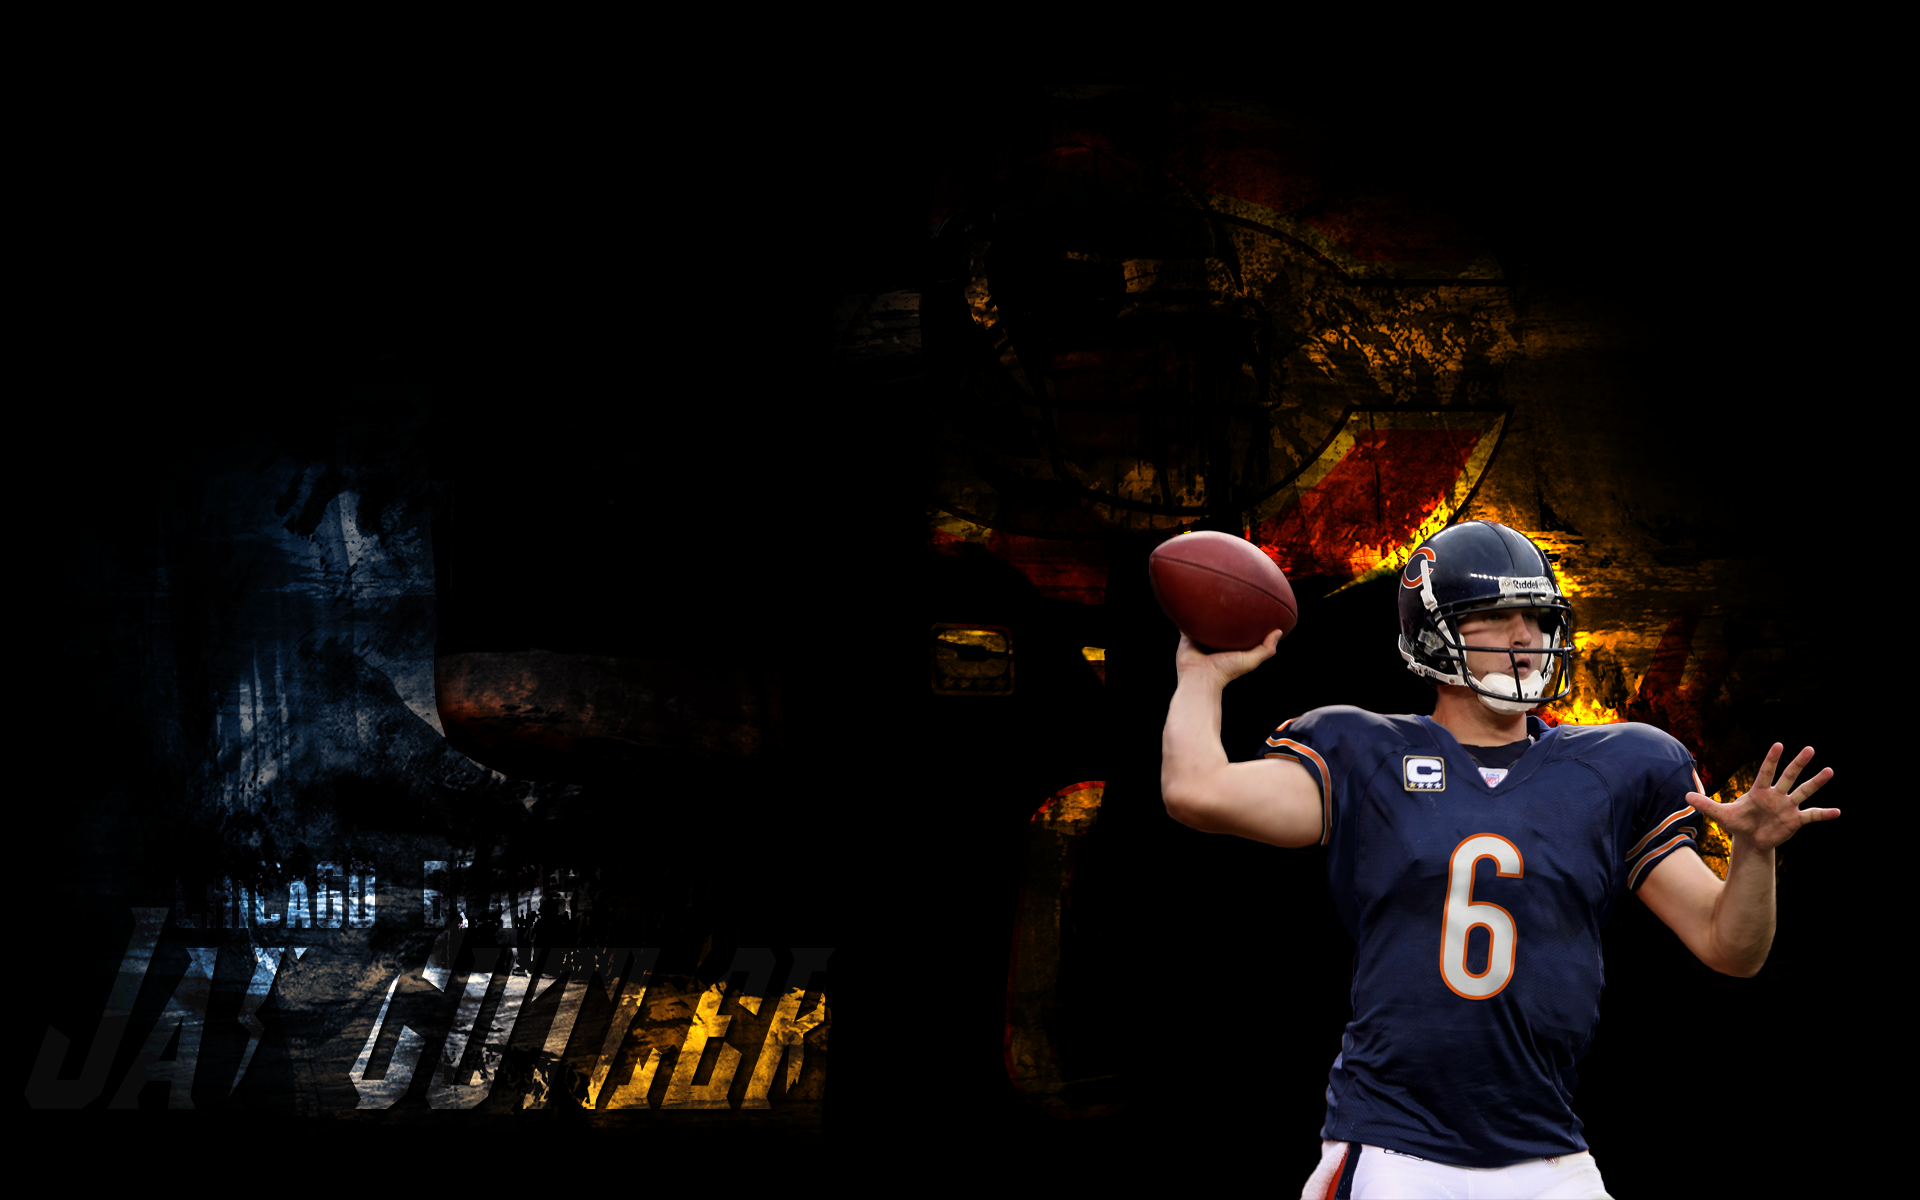 Chicago Bears HD desktop wallpaper Chicago Bears wallpapers 1920x1200